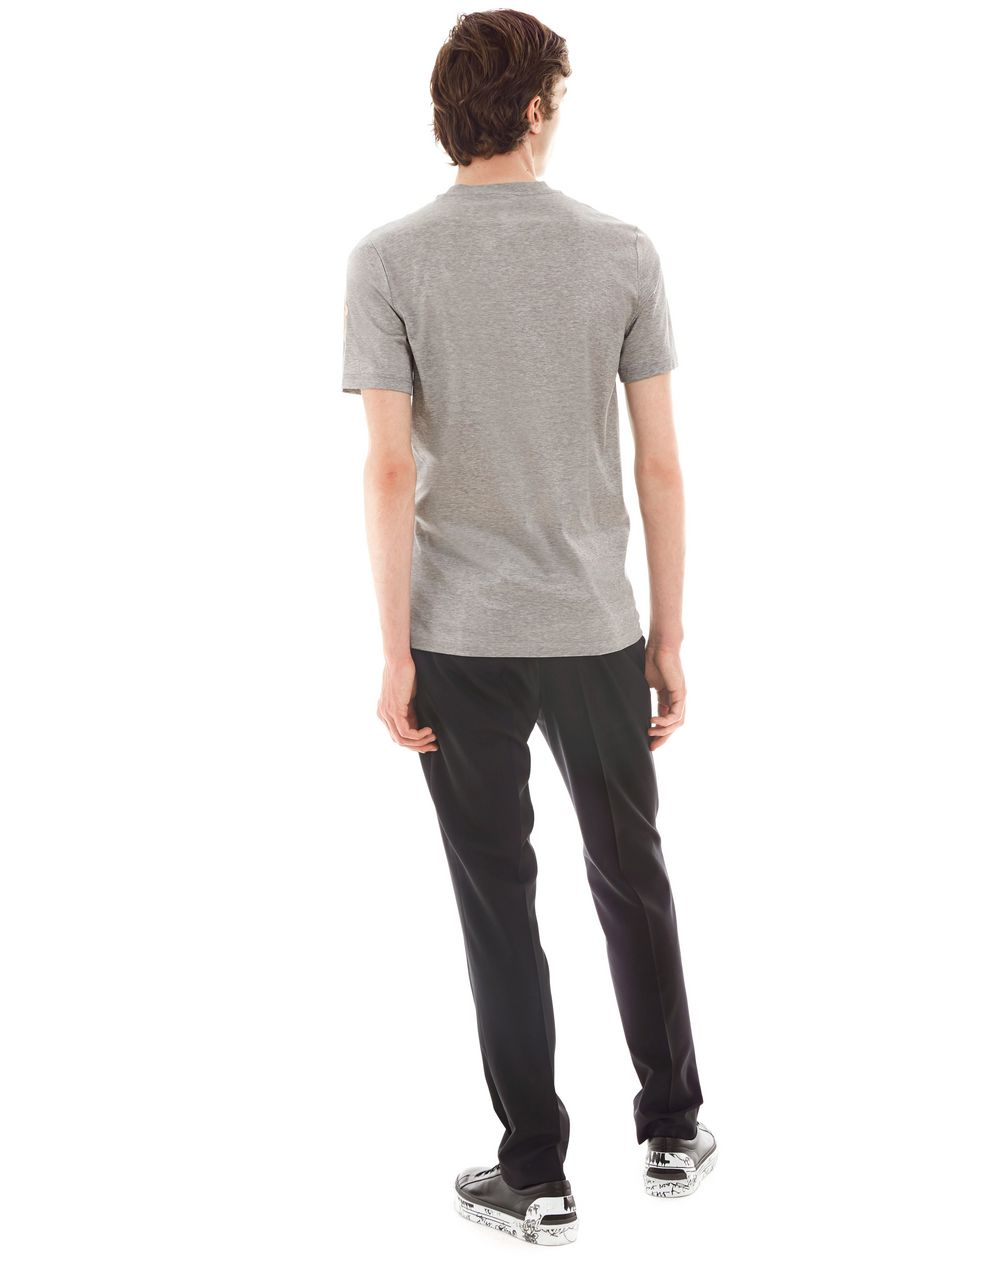 """GAZE"" GREY SLIM-FIT T-SHIRT BY CÉDRIC RIVRAIN - Lanvin"